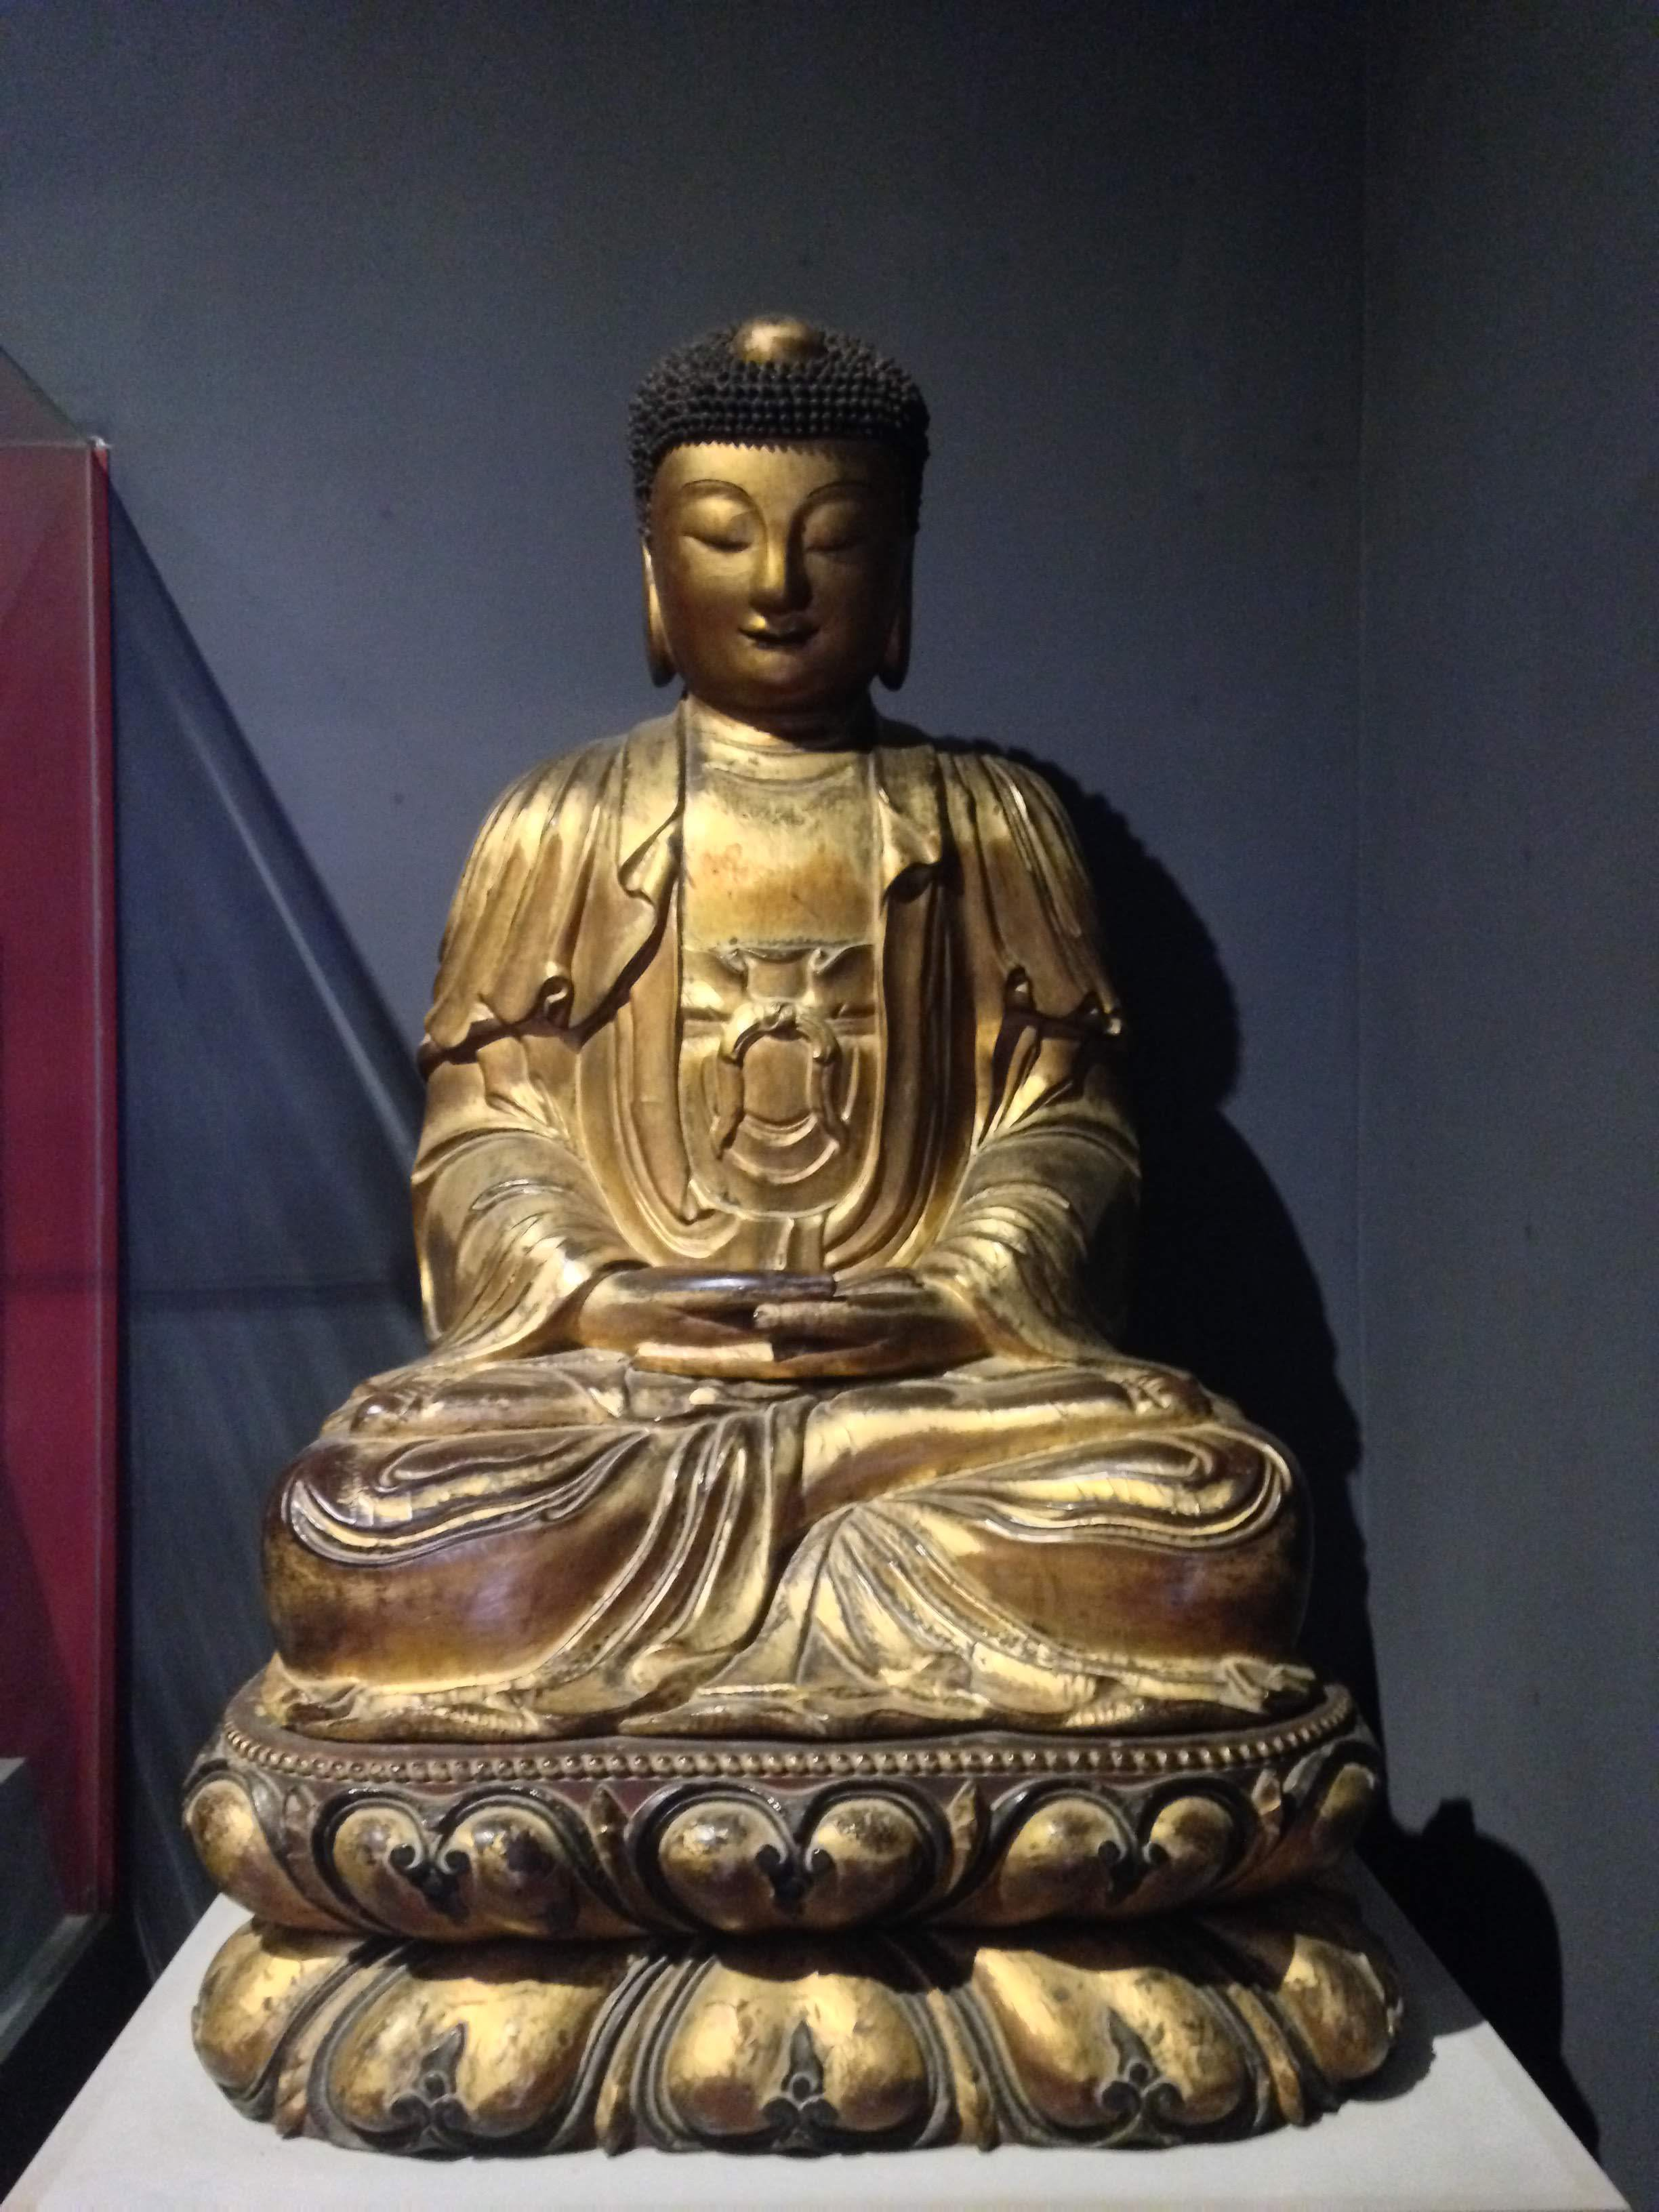 a historic Buddha statue inside the Ho Chi Minh Museum of Vietnamese History